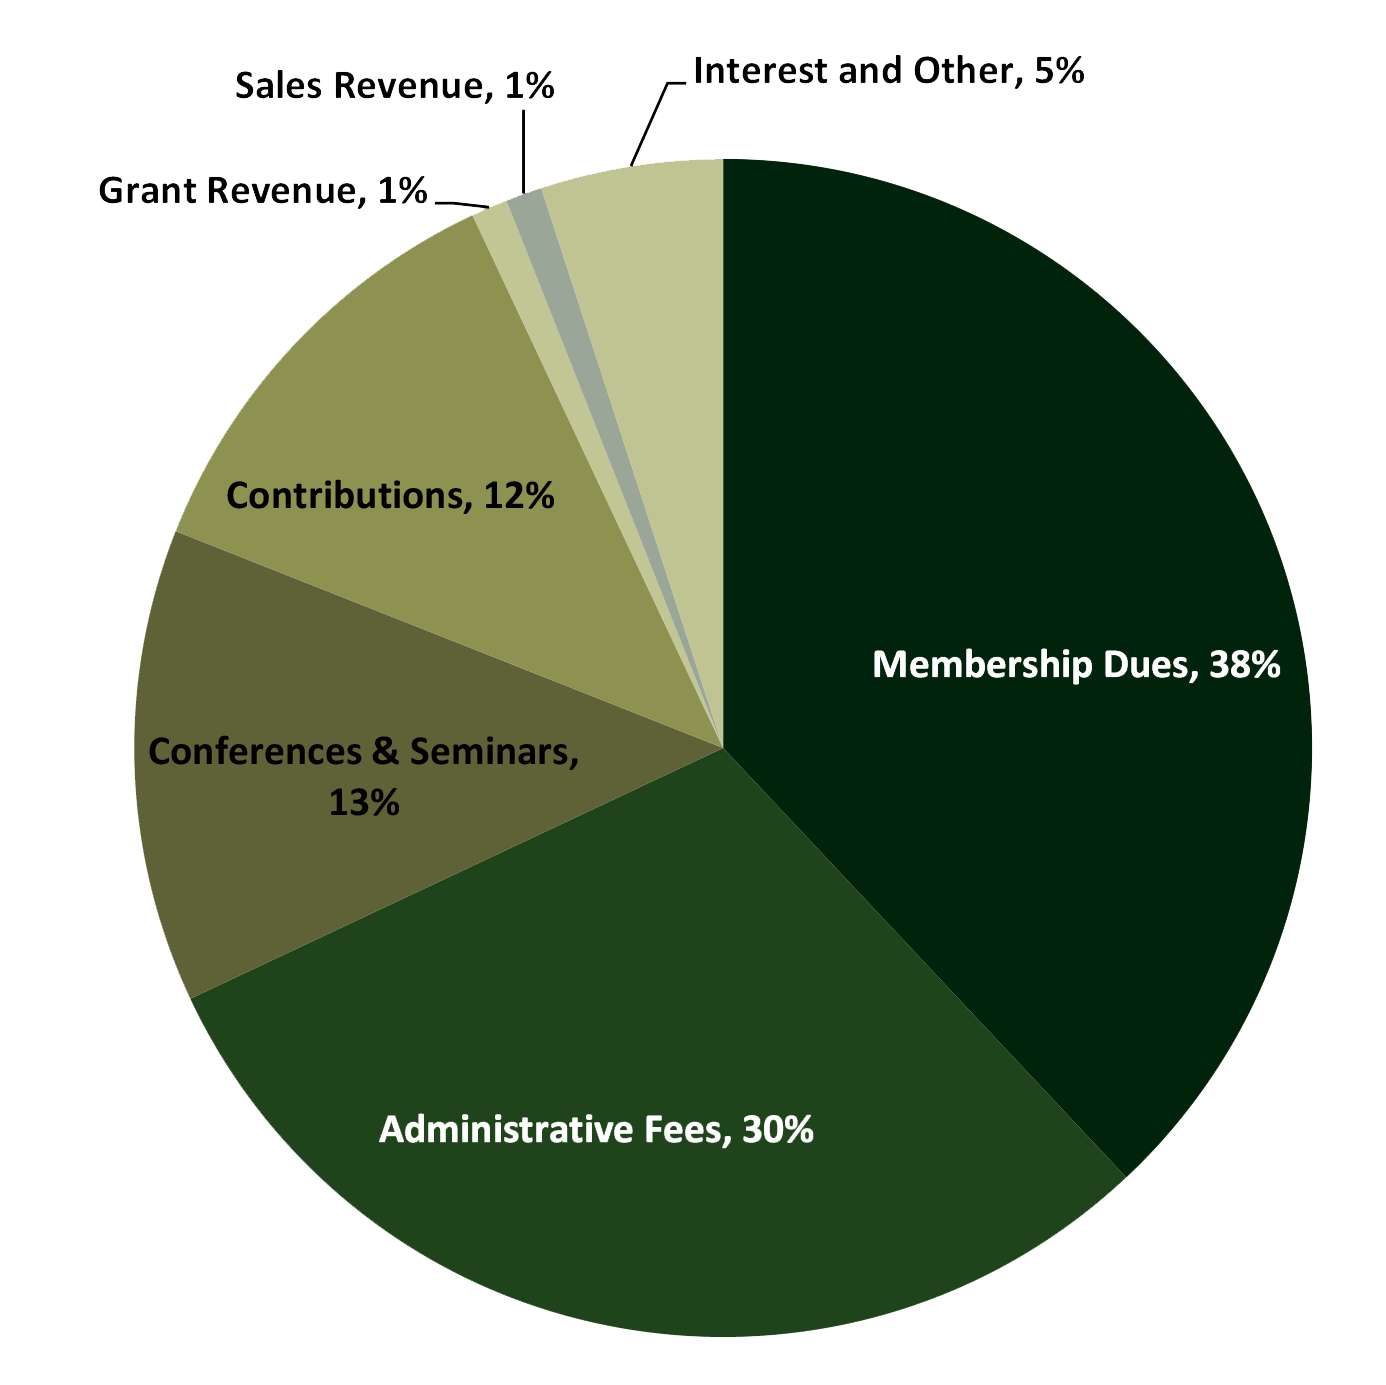 Pie chart of how FSA is supported financially. 38% Membership dues; 30% Administrative Fees; 13% Conferences & Seminars; 12% Contributions; 5% Interest and Other; 1% Grant Revenue; 1% Sales revenue;